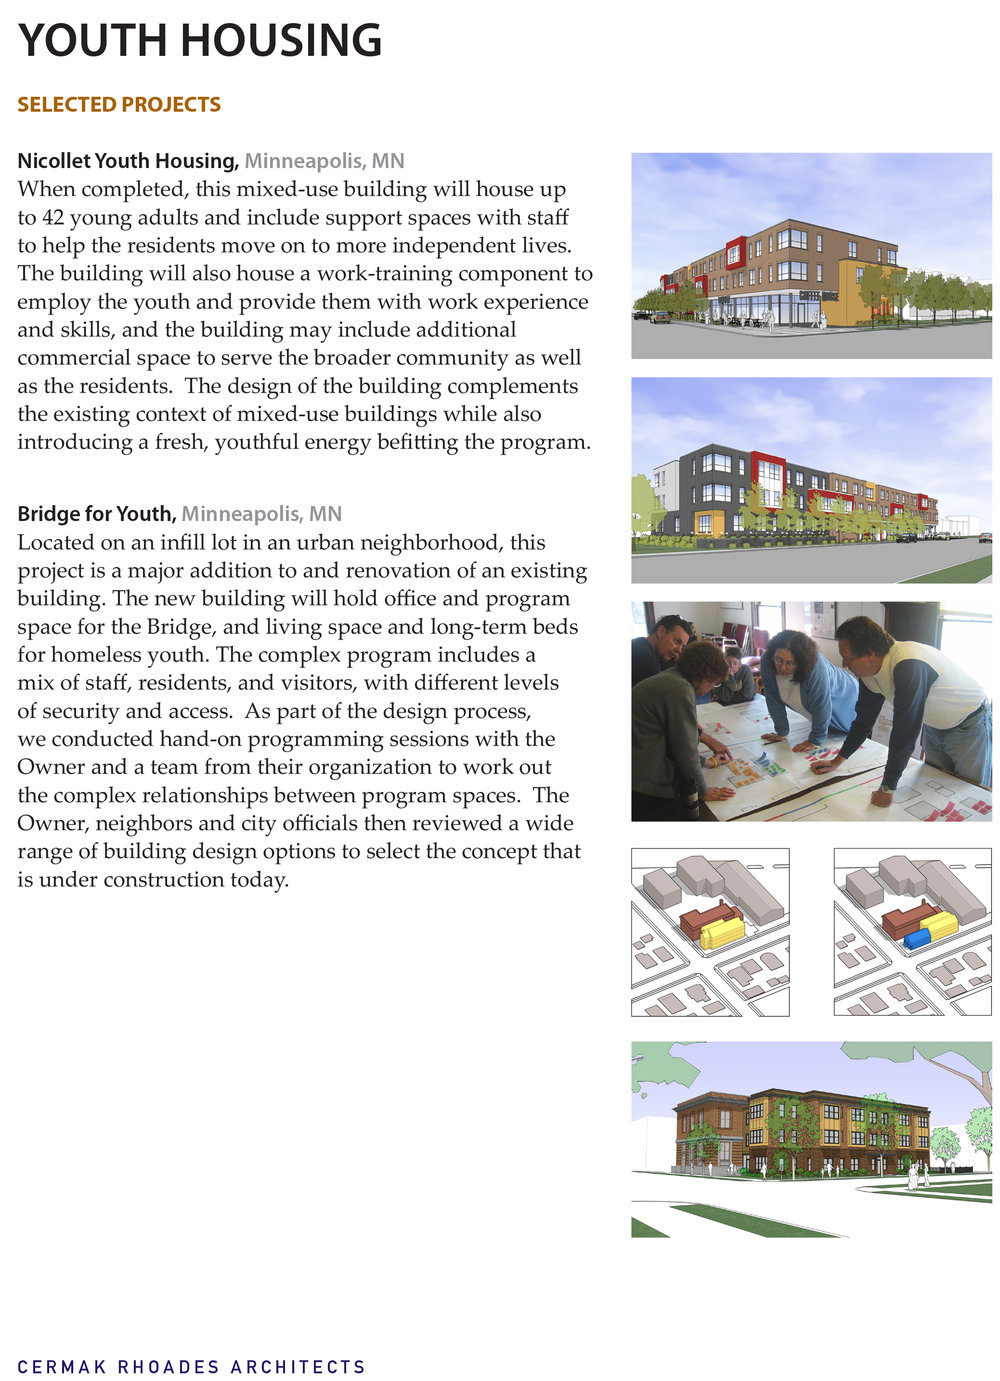 Youth housing info all 103007 3.jpg